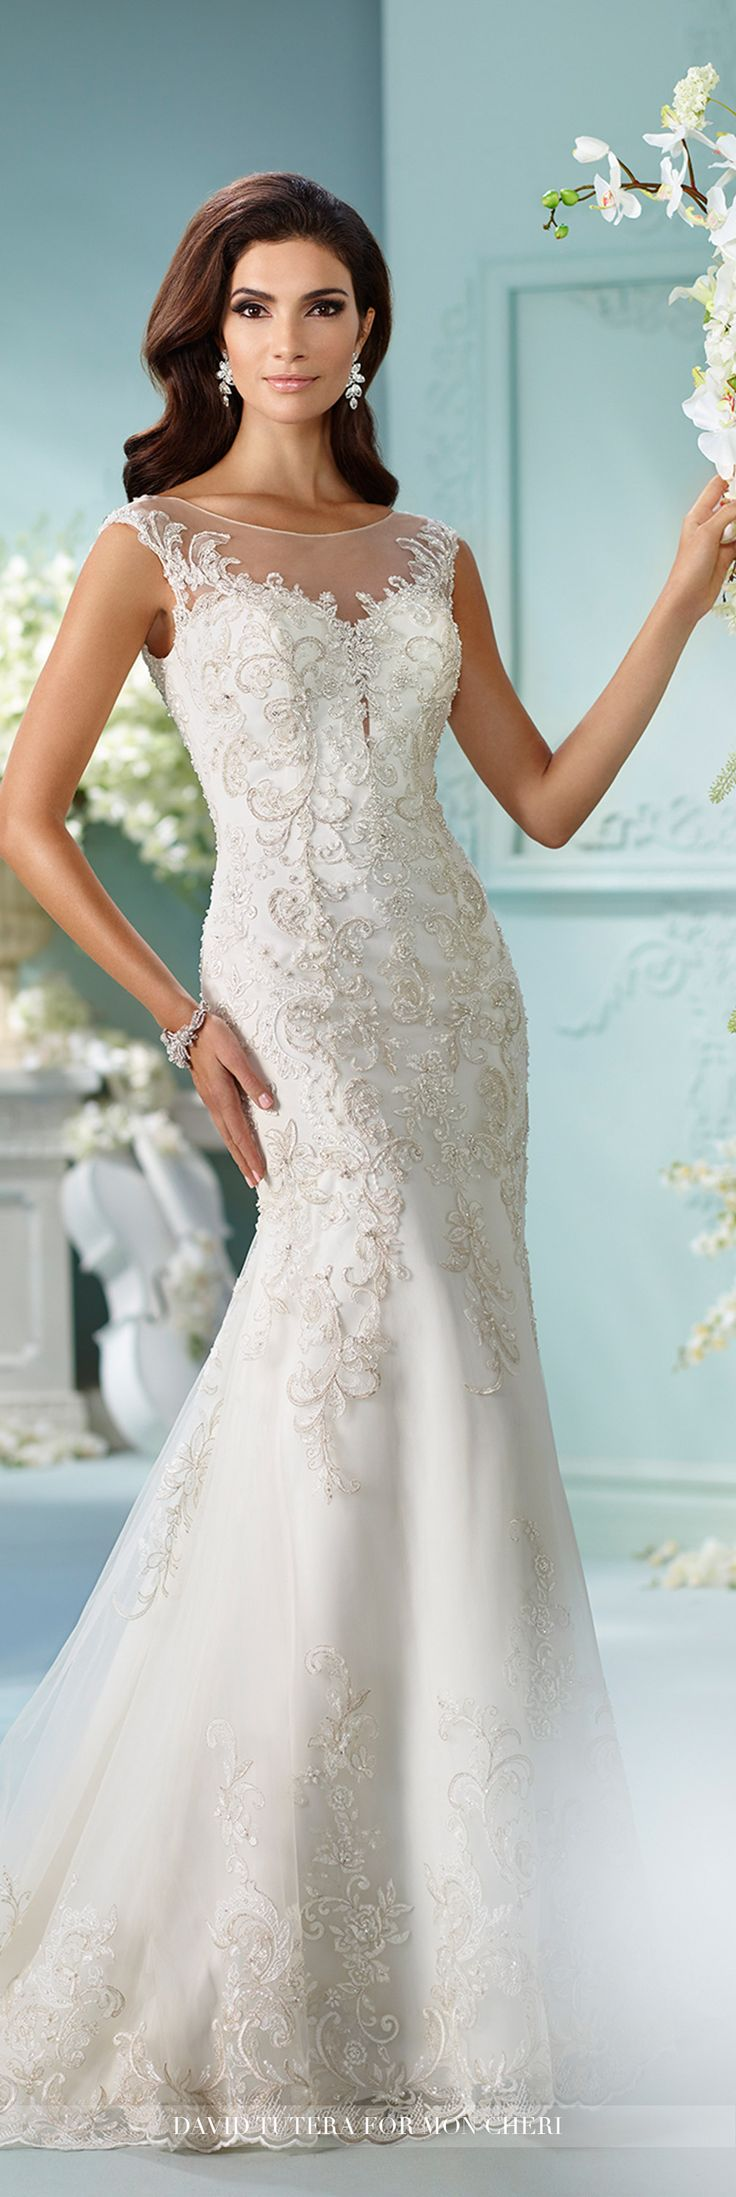 Great Metallic Embroidered Venise Lace Fit u Flare Wedding Dress Cersira